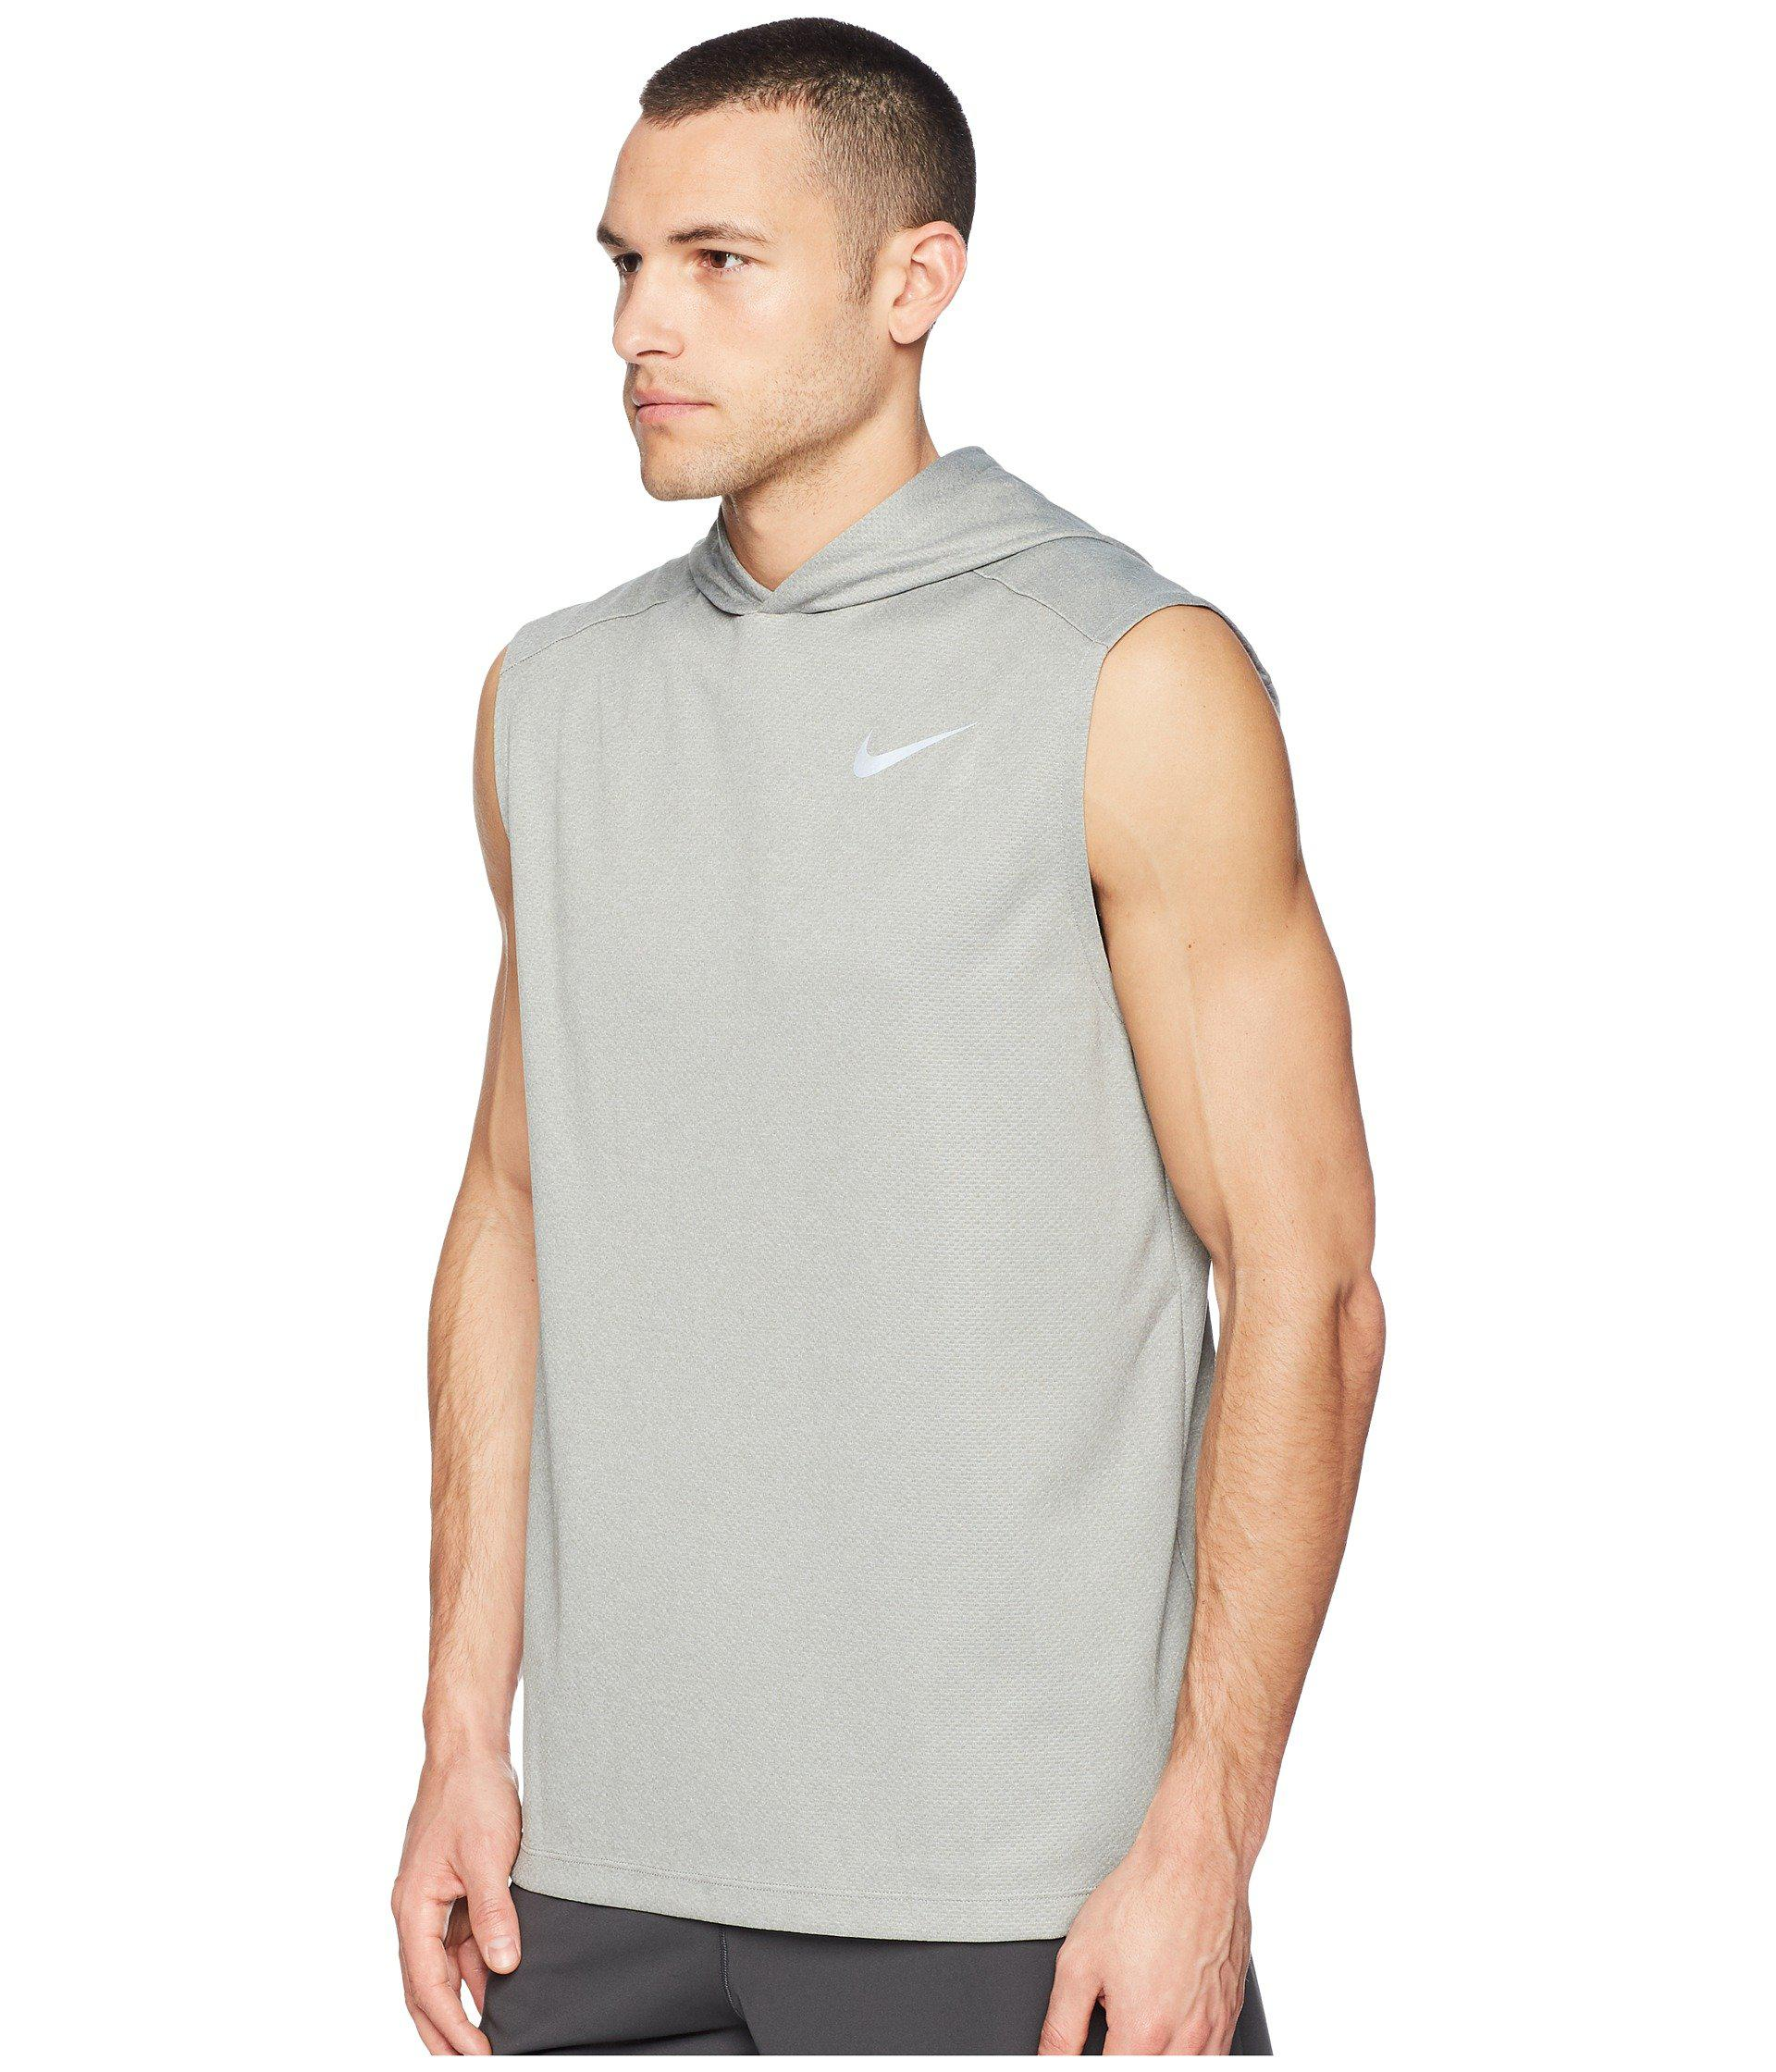 d6877d963ccc1 Lyst - Nike Dry Top Sleeveless Running Hoodie in Gray for Men